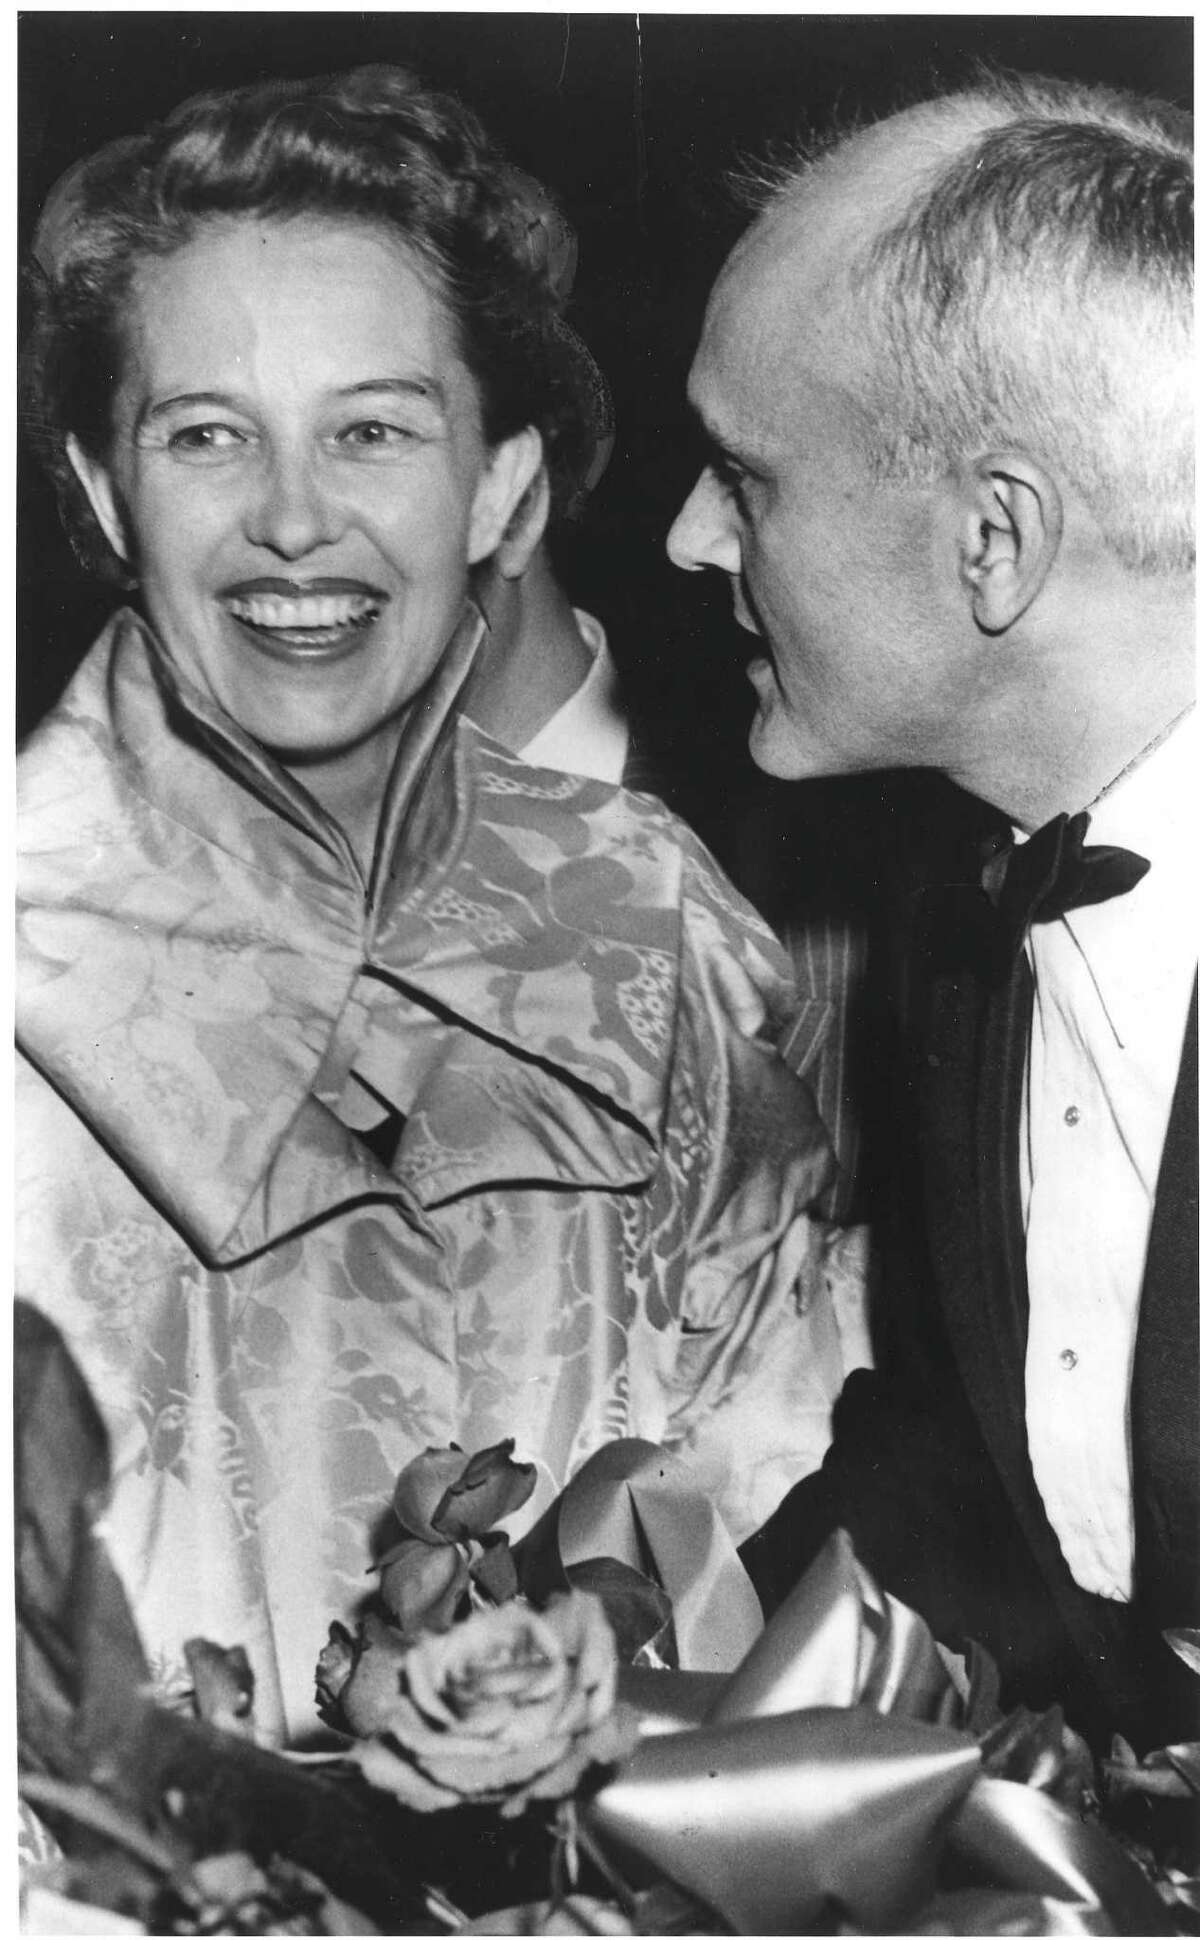 Dominique de Menil and architect Philip Johnson share stories at a party in 1949.